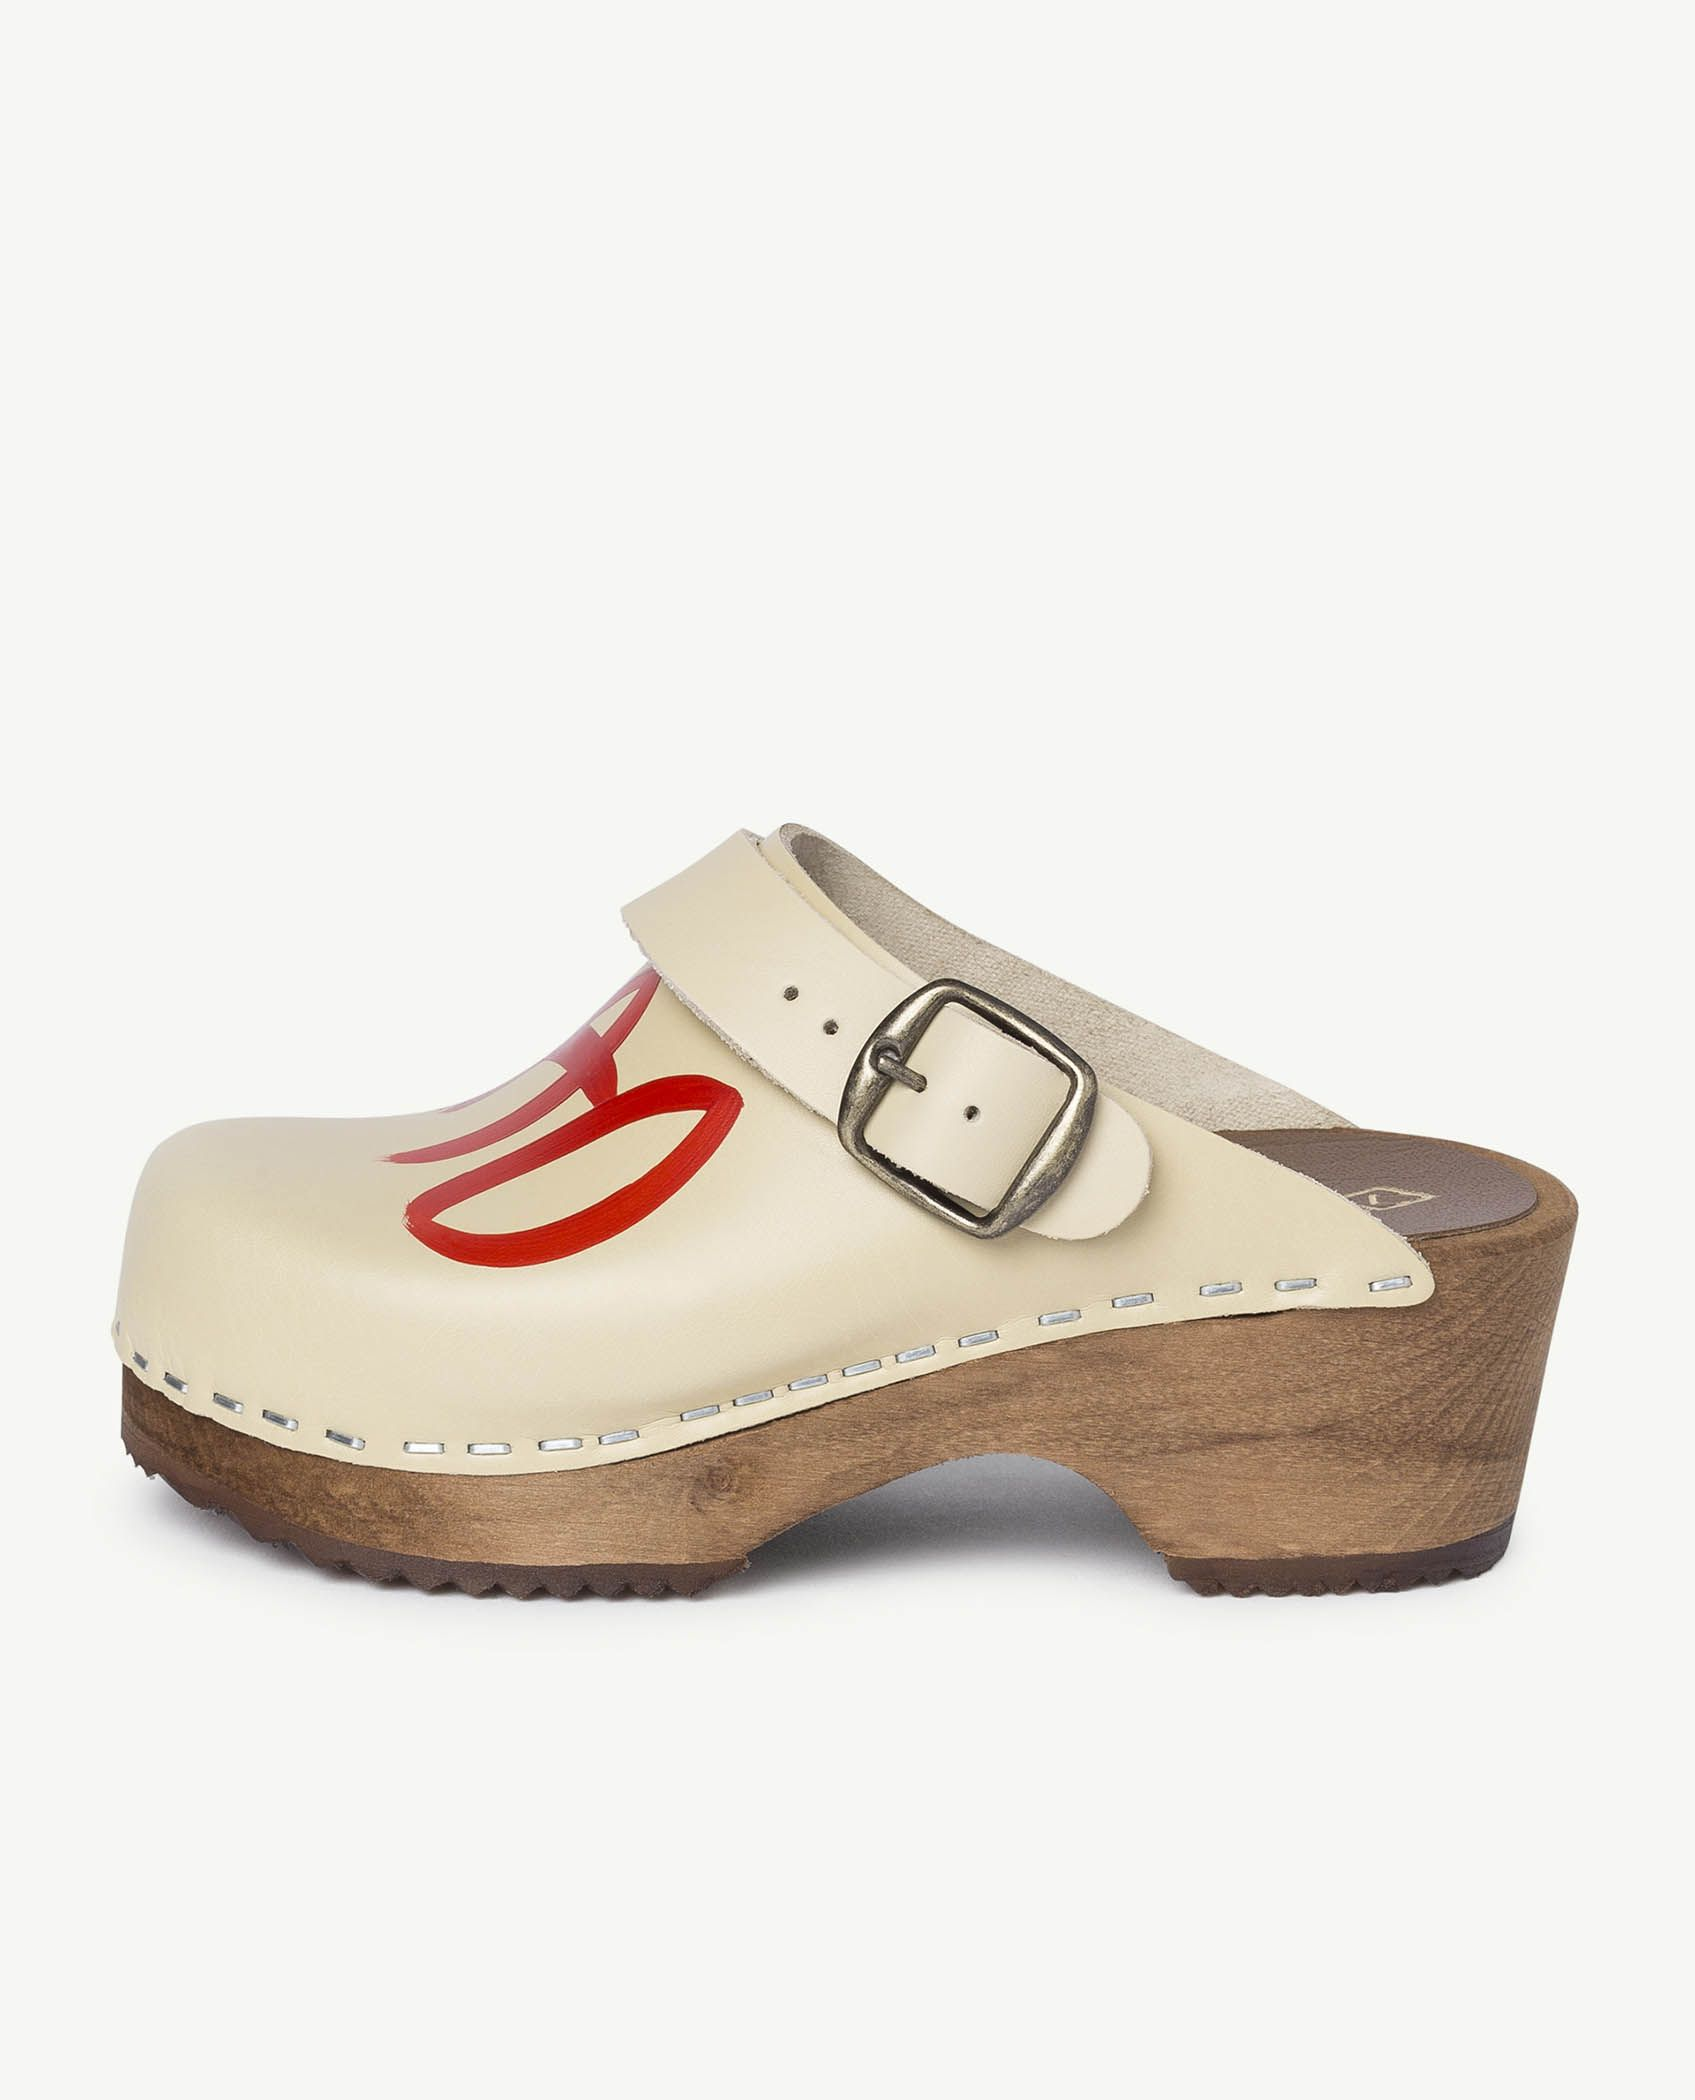 White Clogs Shoes img-2